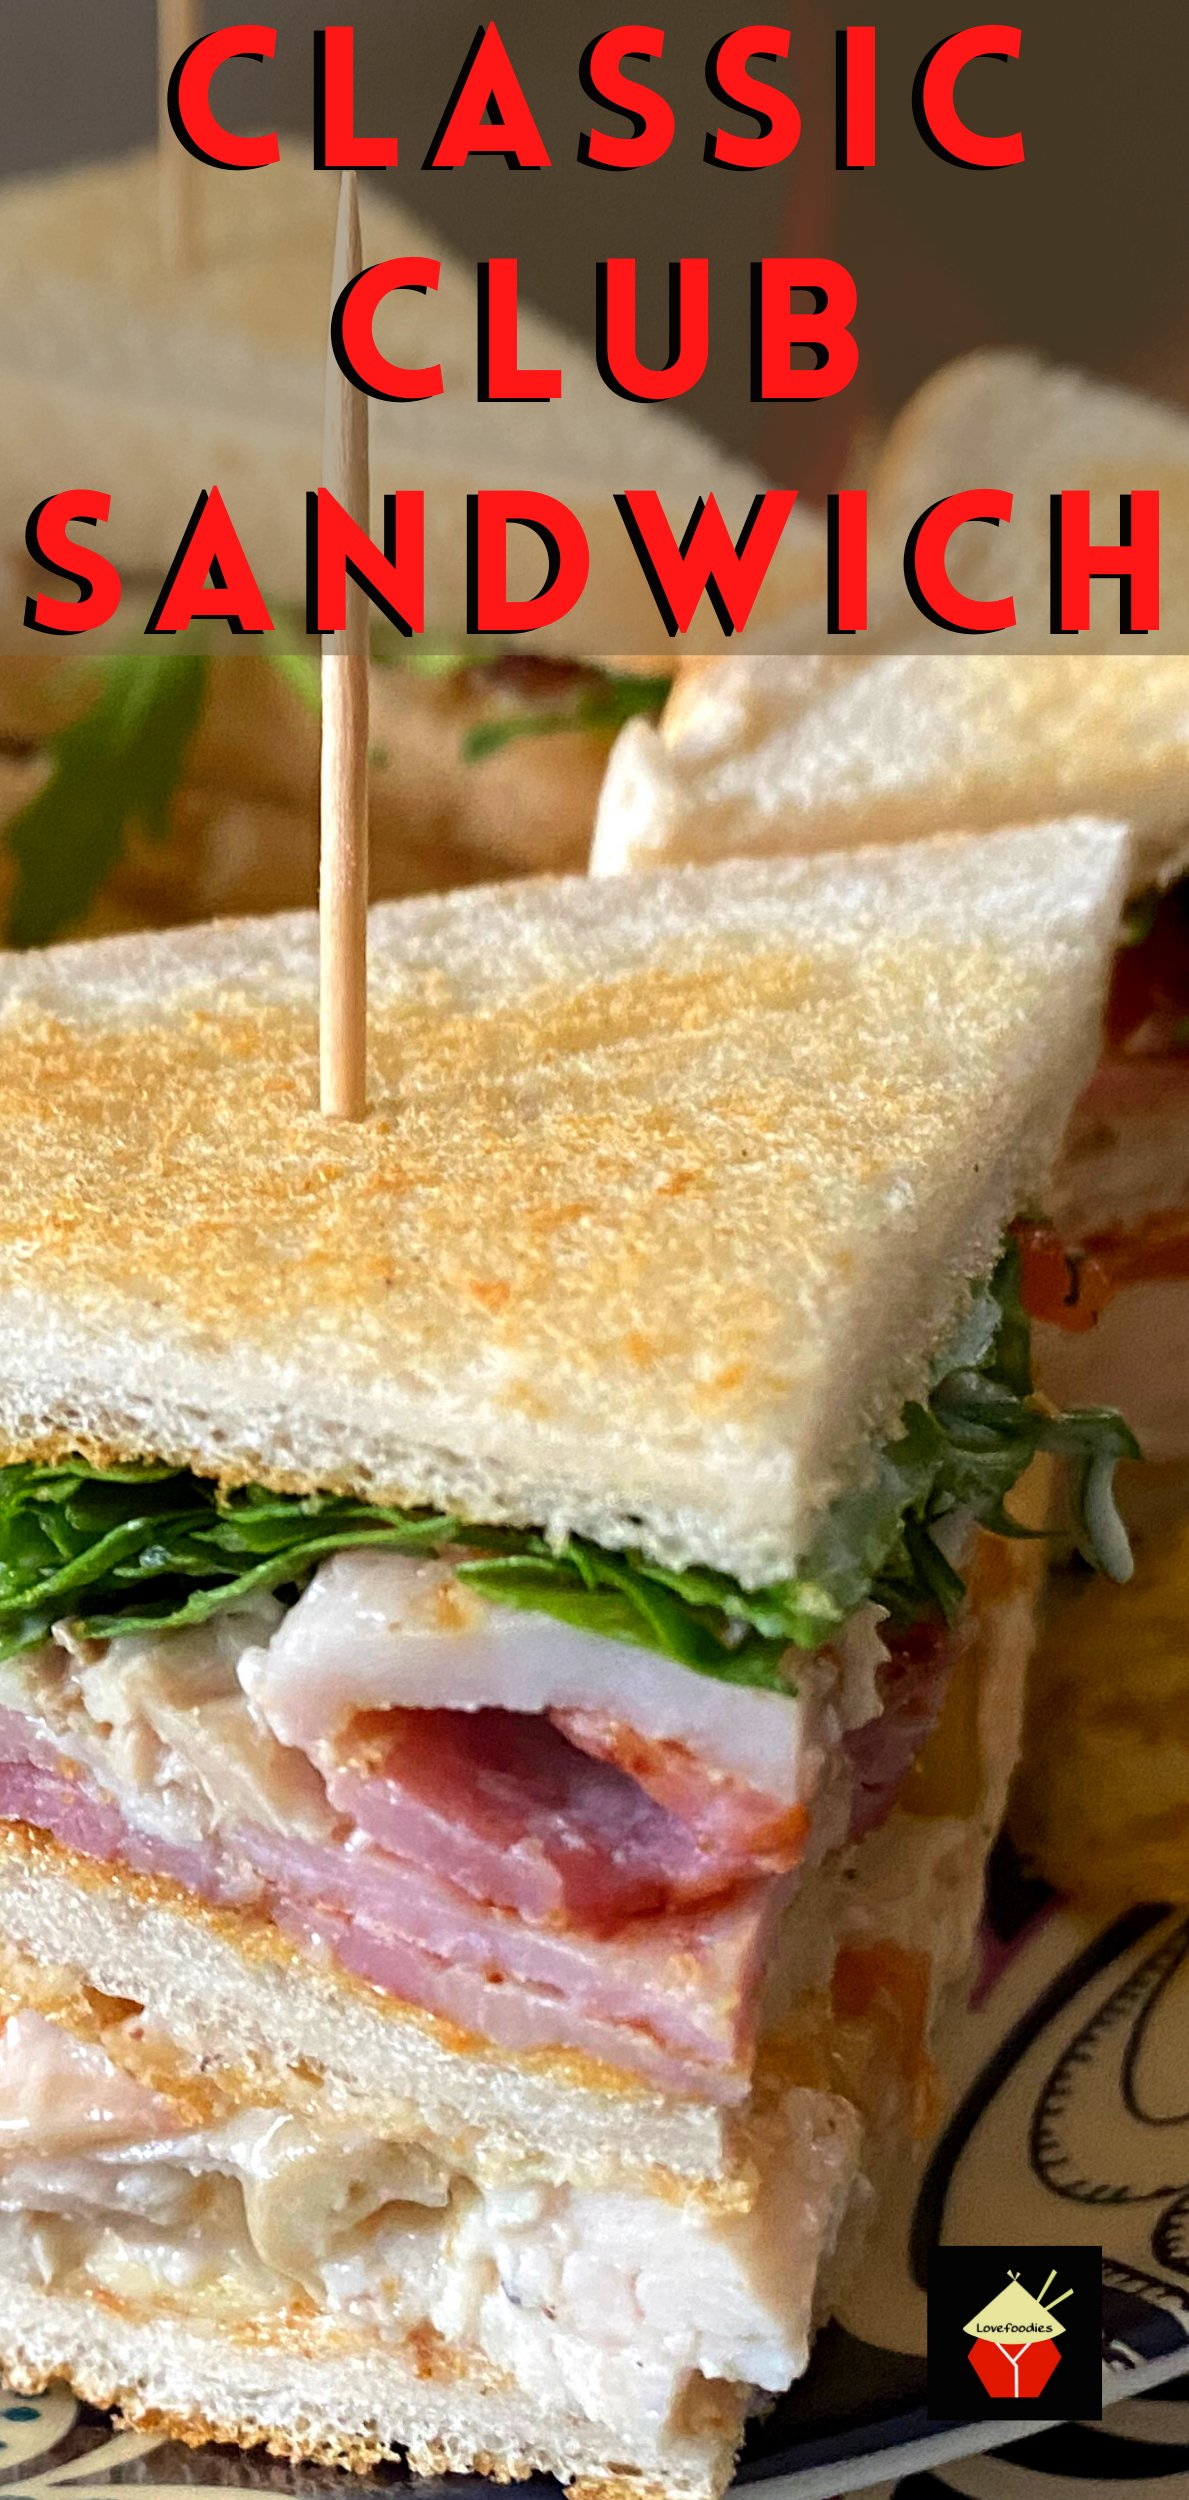 Hotel Style Club Sandwiches, toasted layers of bread filled with bacon, chicken, lettuce and tomato. A delicious classic sandwich recipe, perfect for brunch or lunch